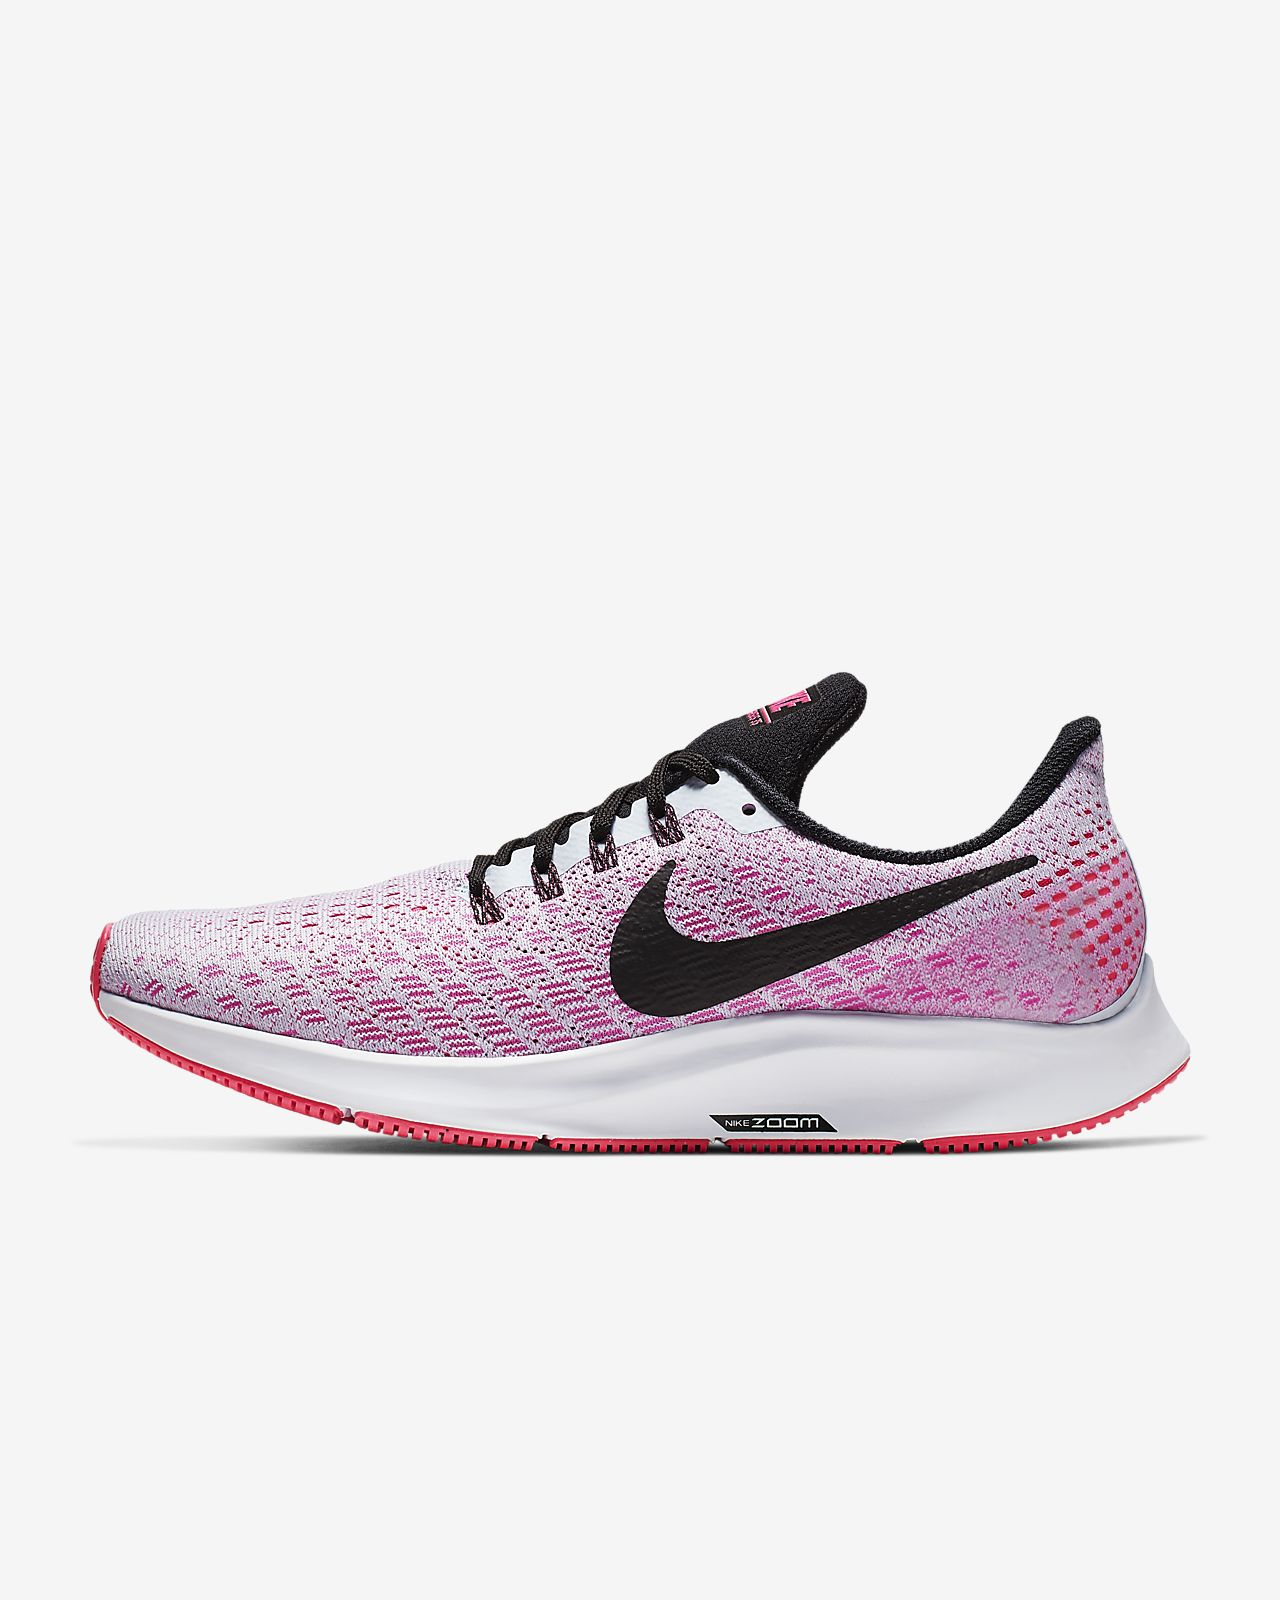 7da9dfea2 Nike Air Zoom Pegasus 35 Women's Running Shoe. Nike.com